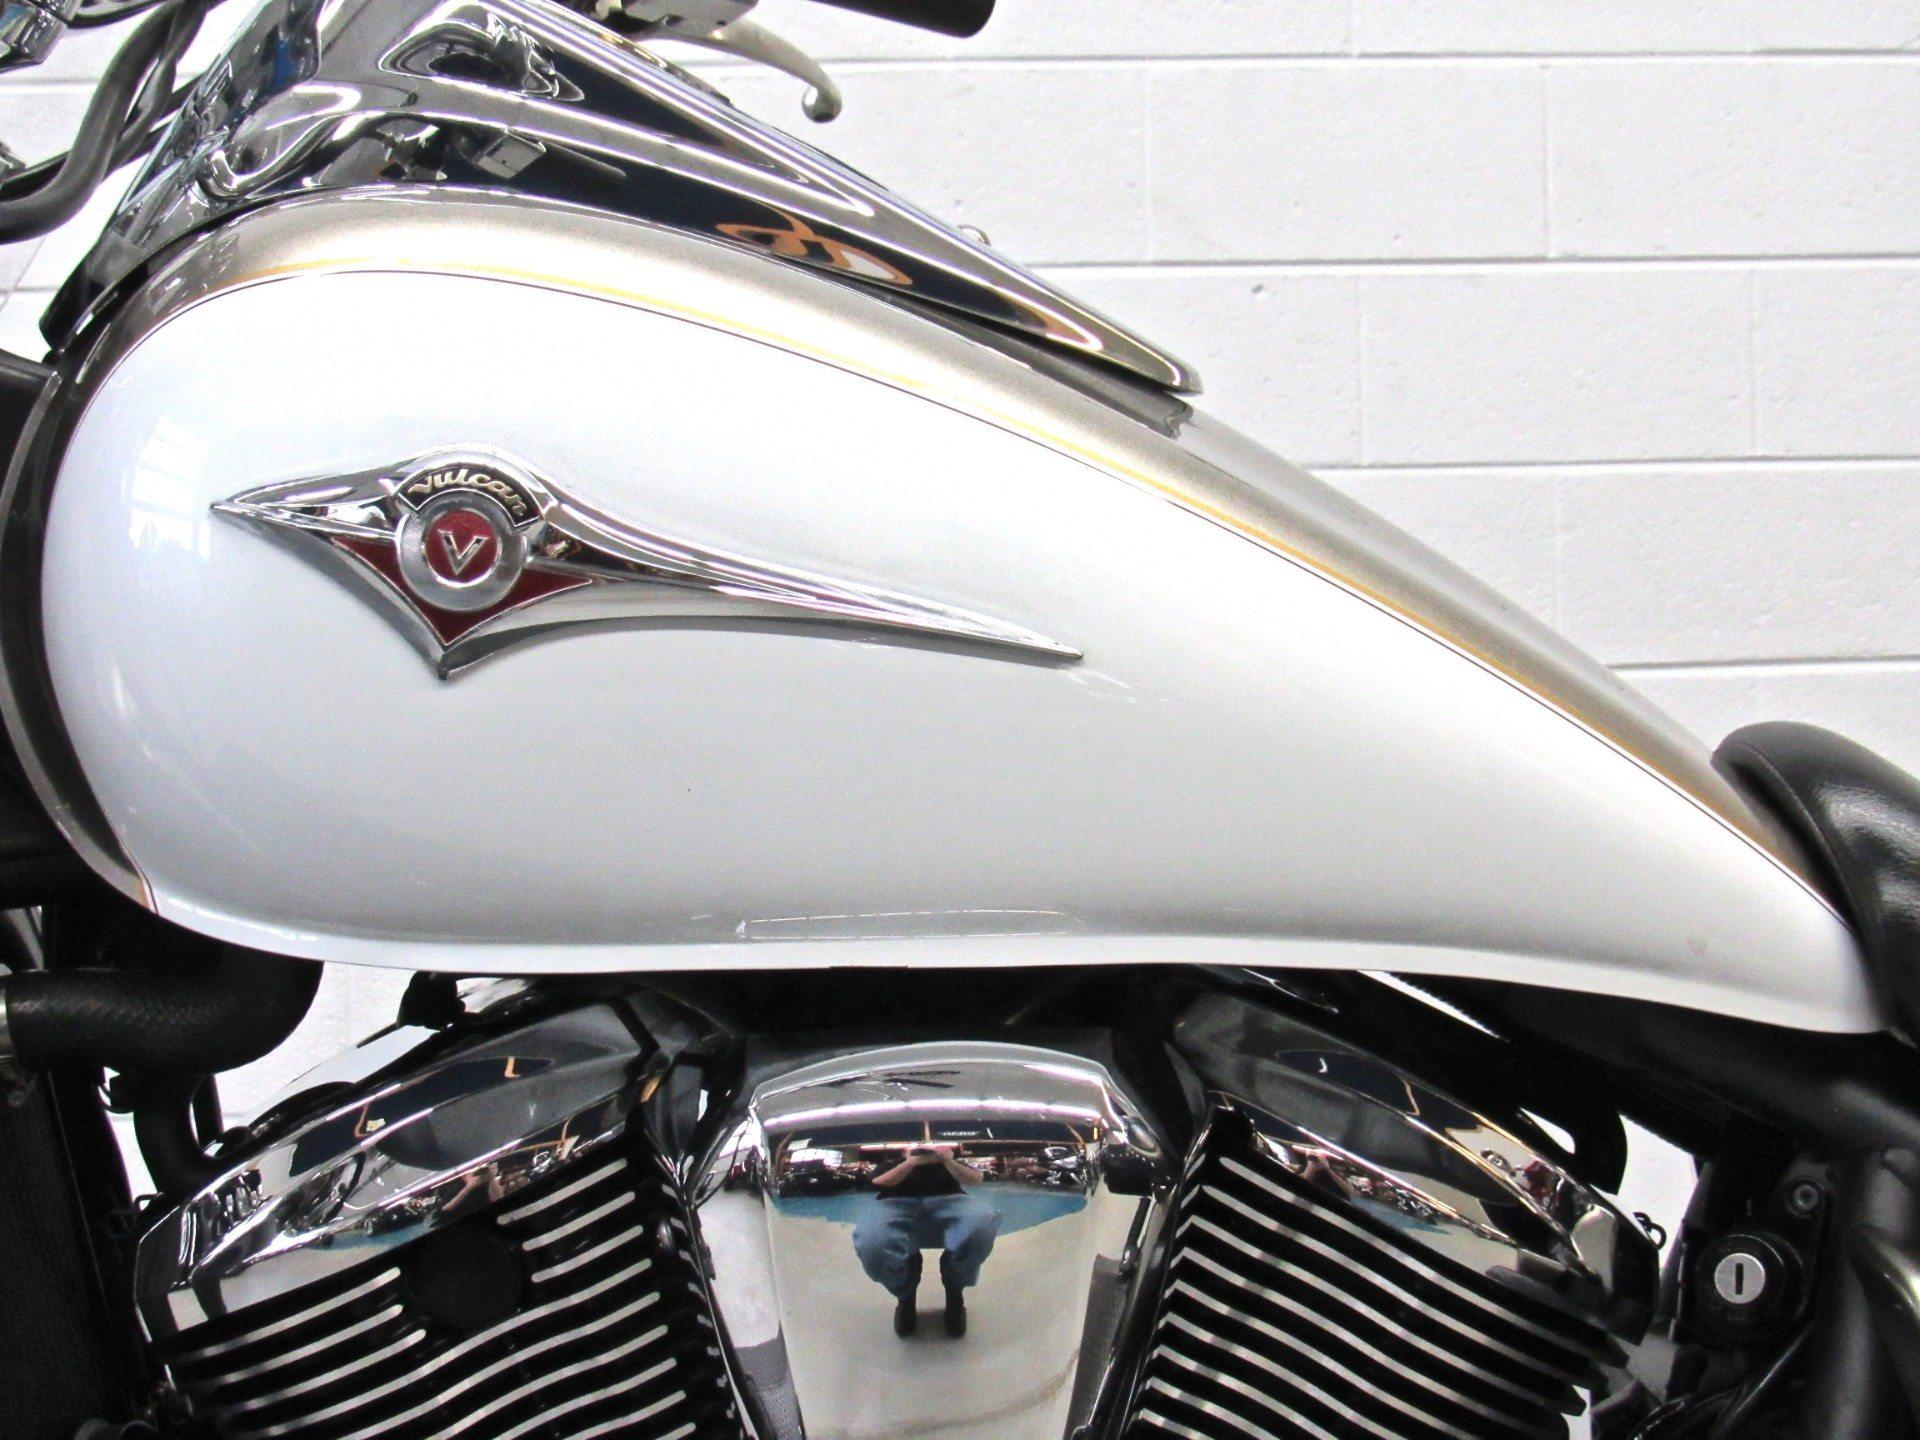 2009 Kawasaki Vulcan® 900 Classic LT in Fredericksburg, Virginia - Photo 18